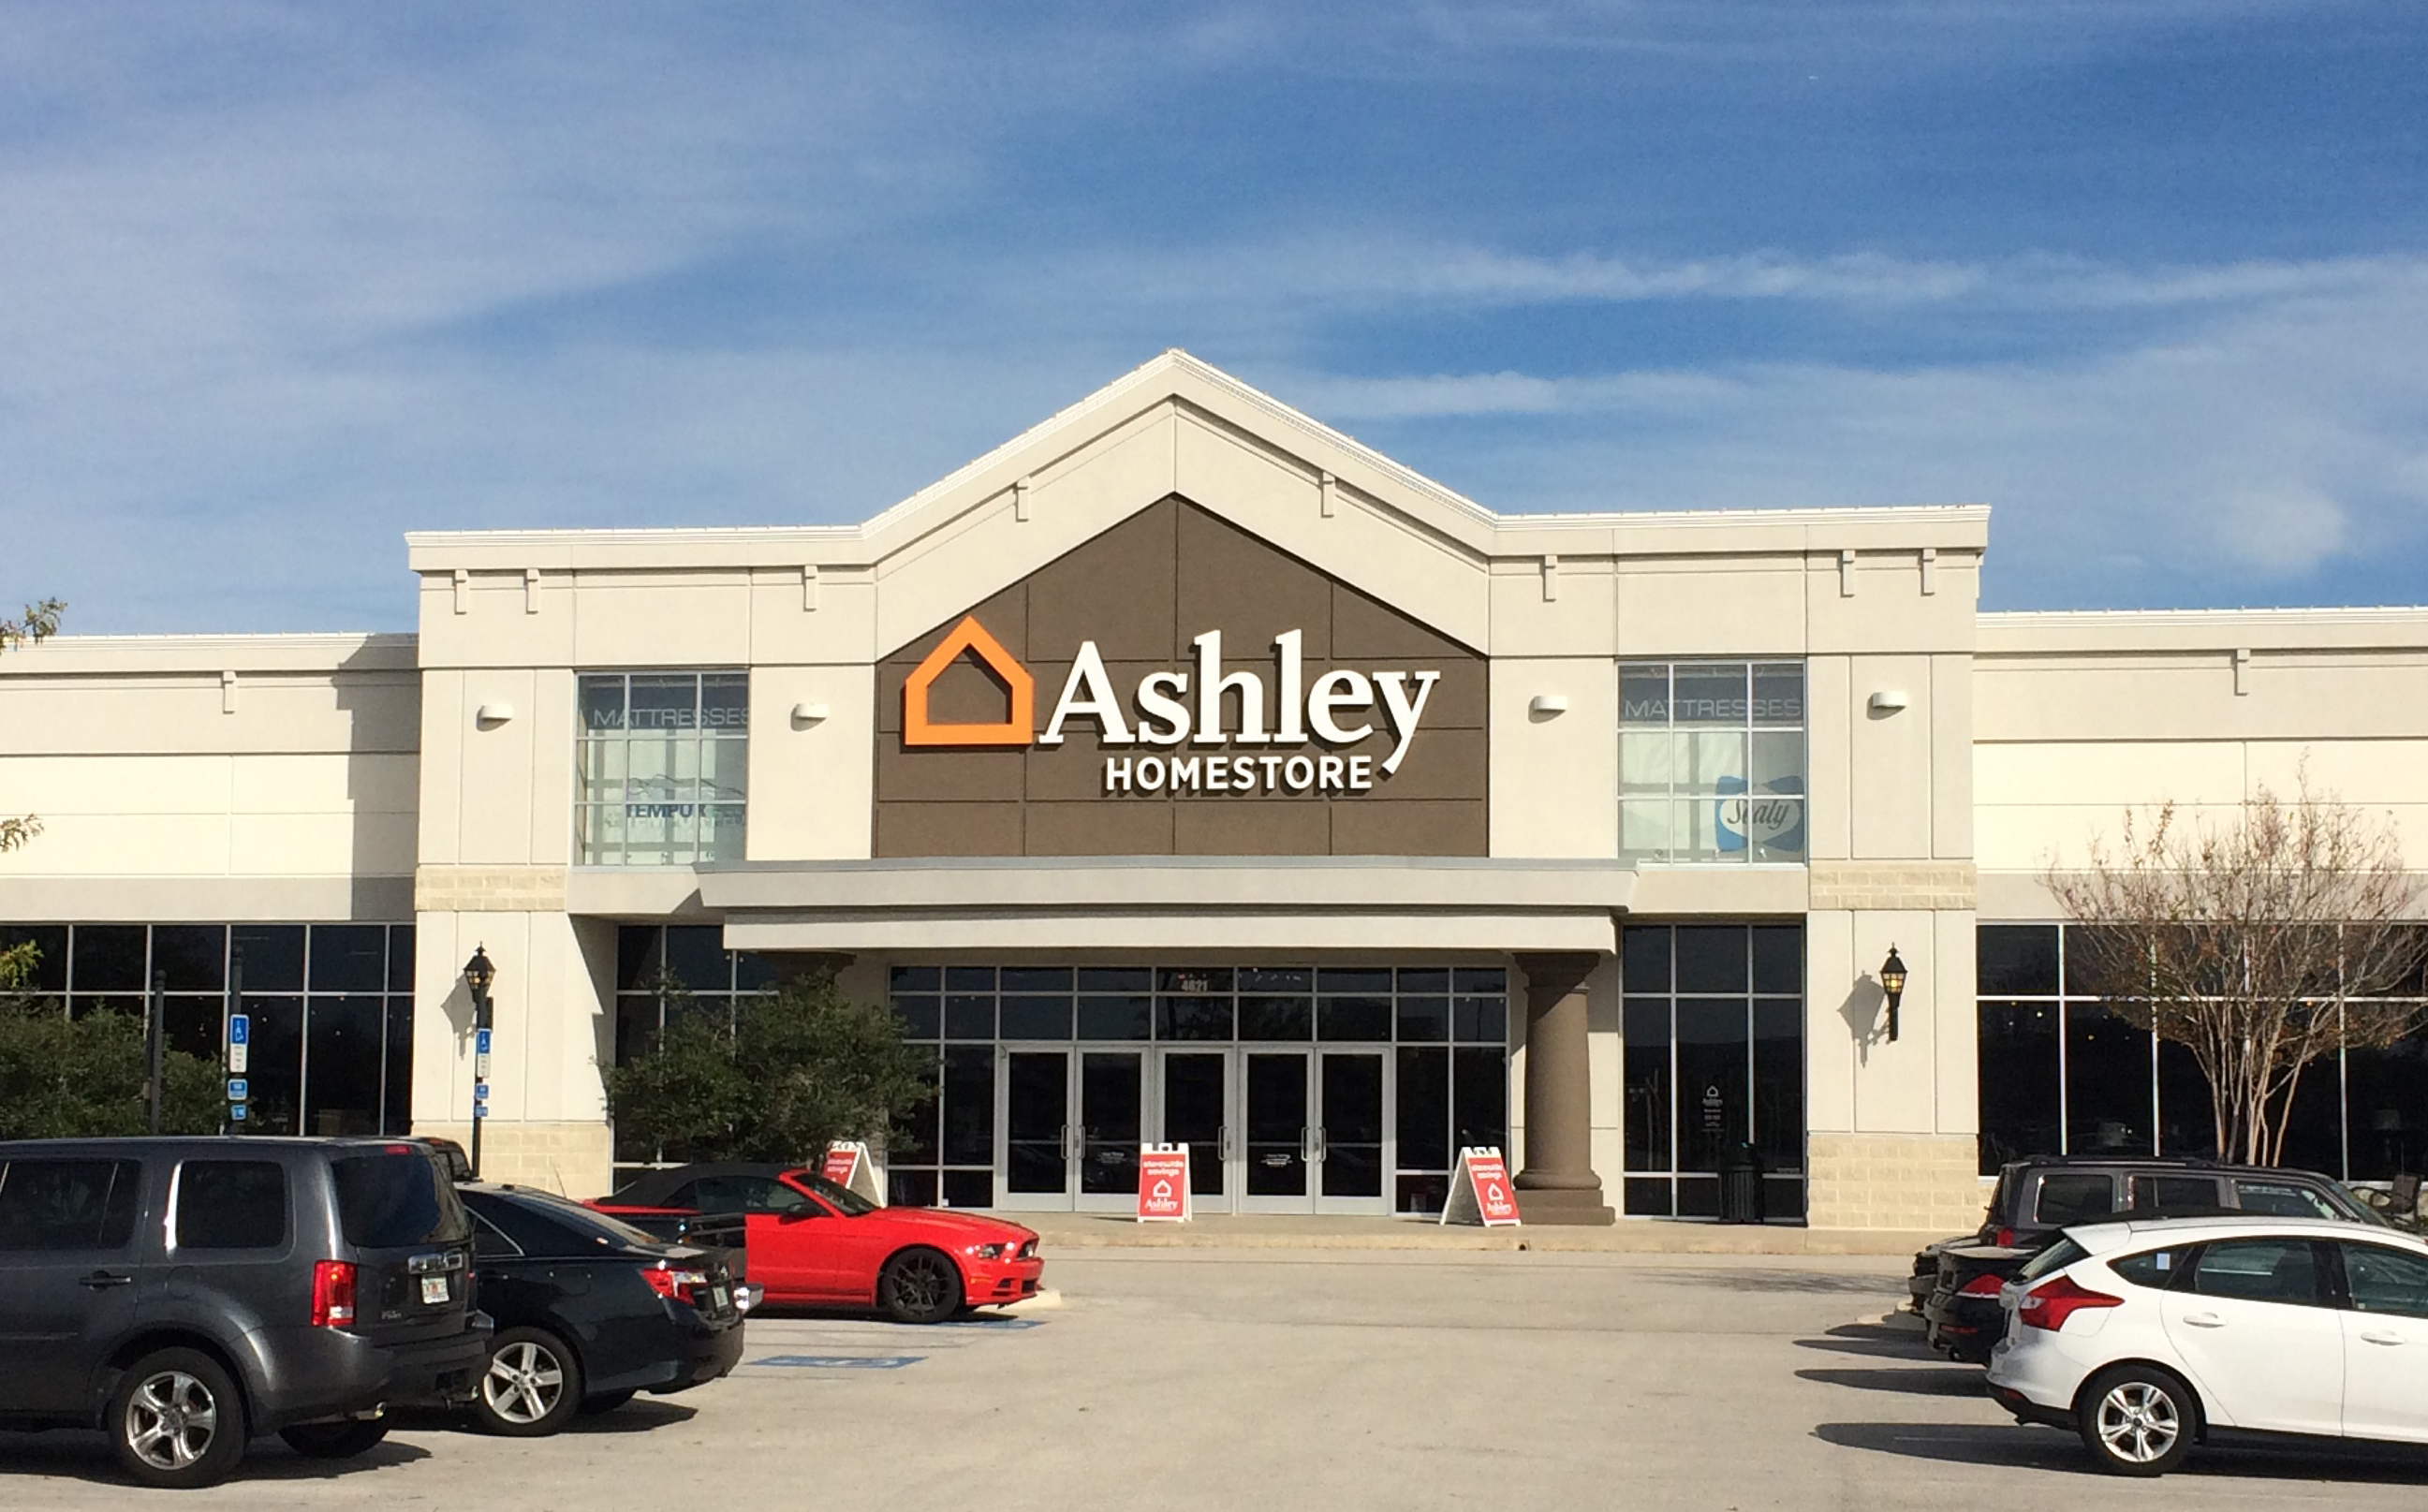 Ashley Homestore 4621 River City Dr Jacksonville Fl 32246